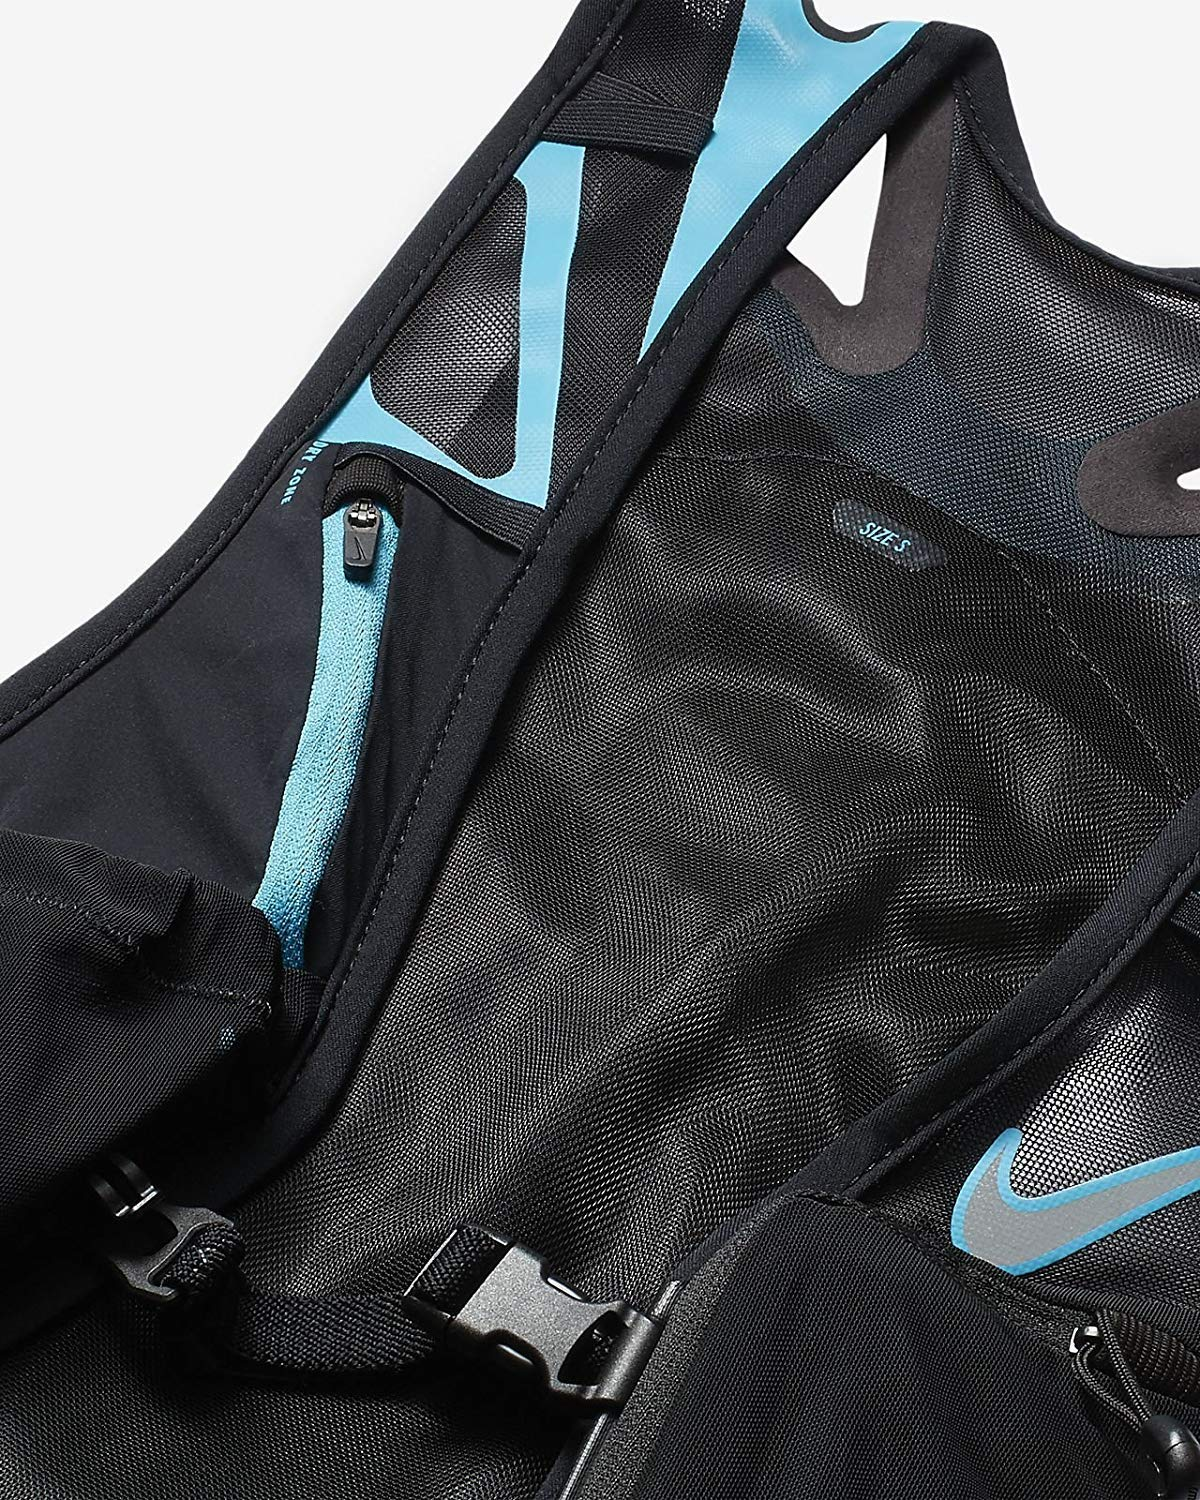 Amazon.com : Nike Trail Kiger Vest 3.0, Running, Hiking, Black/Blue : Sports & Outdoors